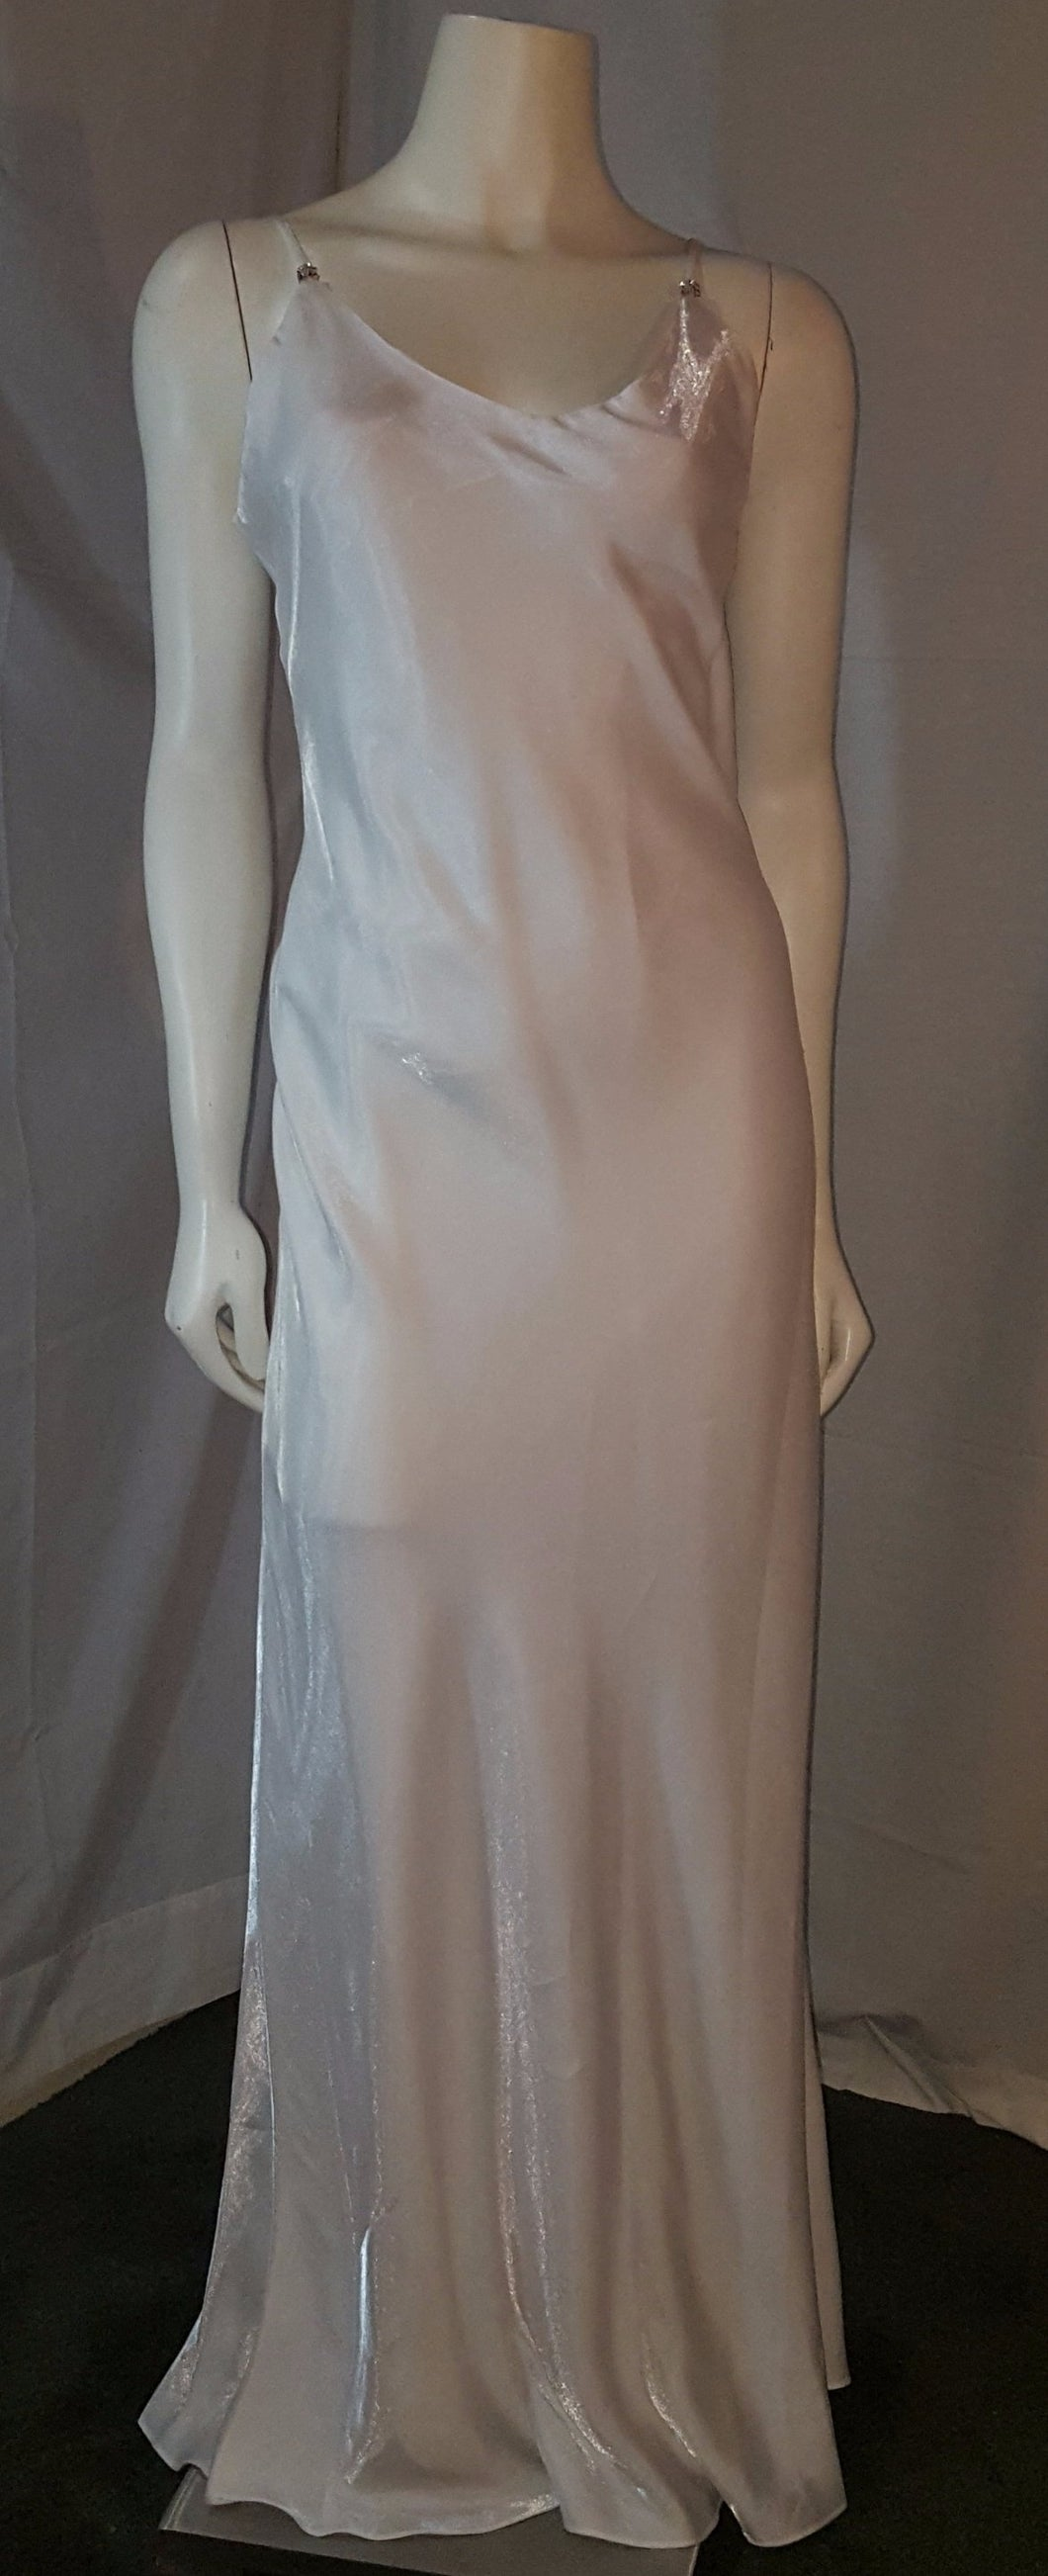 Ivory long dress, front view, sleeveless, , zipper